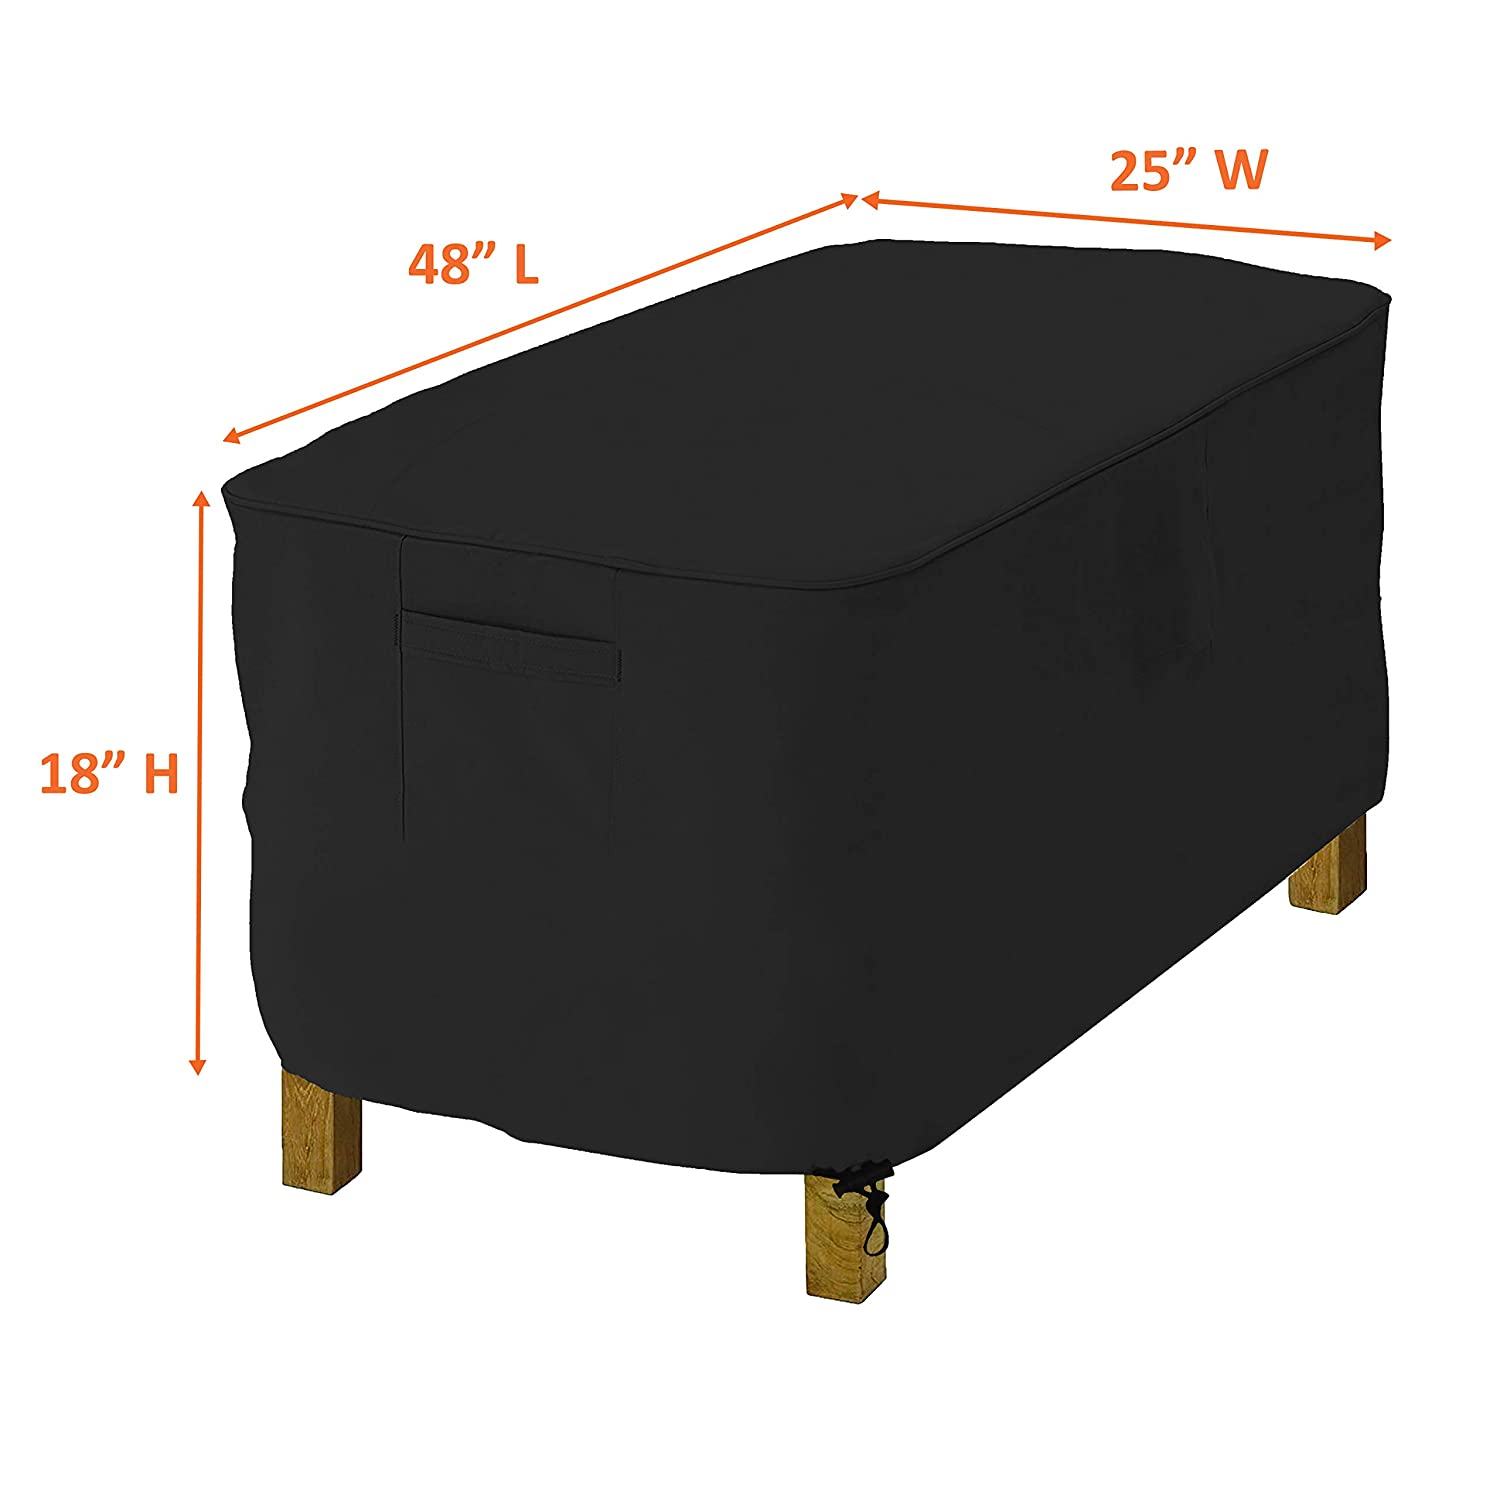 100/% UV /& Weather Resistant Outdoor Ottoman Cover with Air Pockets /& Drawstring for Snug Fit COVERS /& ALL Rectangle Ottoman Cover 18 Oz Waterproof 22 W x 32 L x 17 H, Black